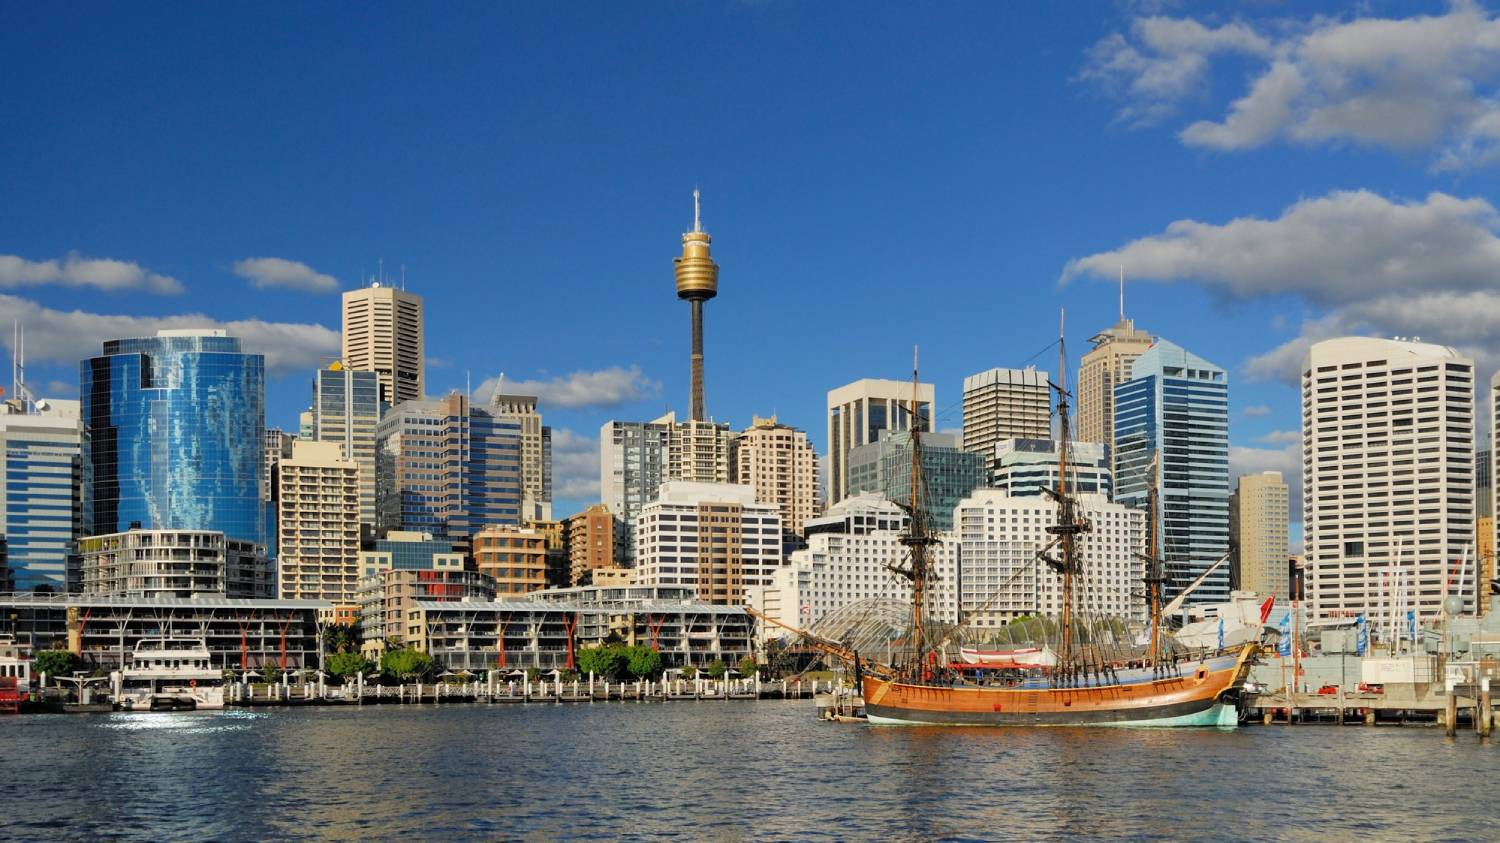 Darling Harbour - Things To Do In Sydney